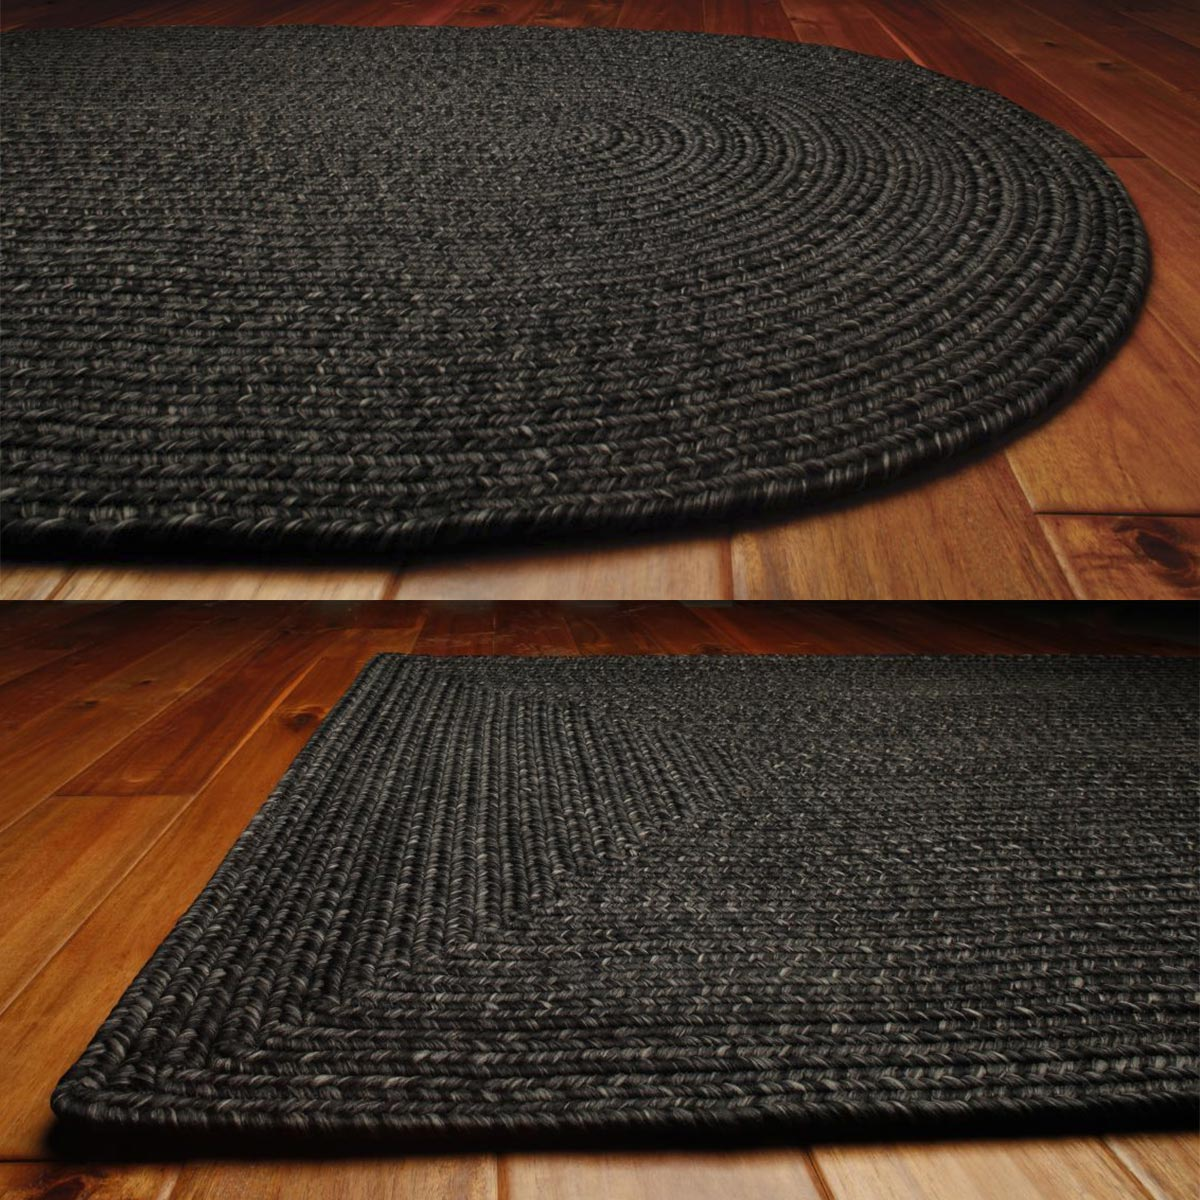 Solid Braided Area Rugs Indoor Outdoor Oval Rectangle | eBay - photo#24